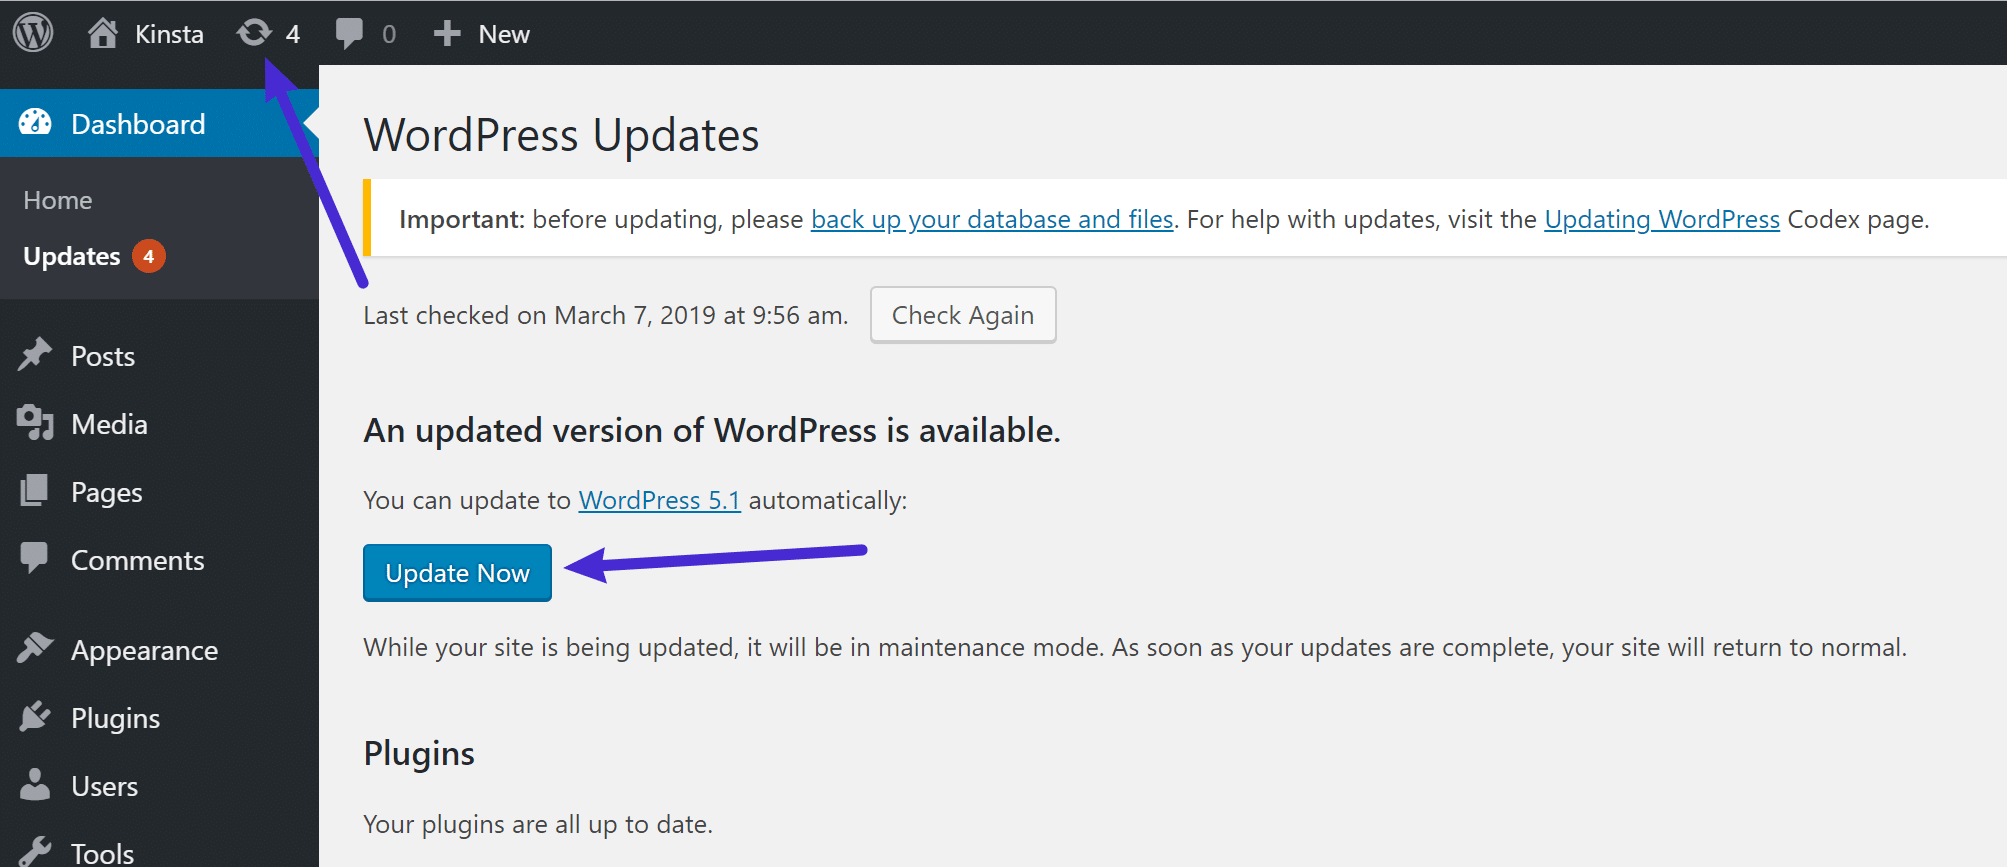 How to update to WordPress 5.1